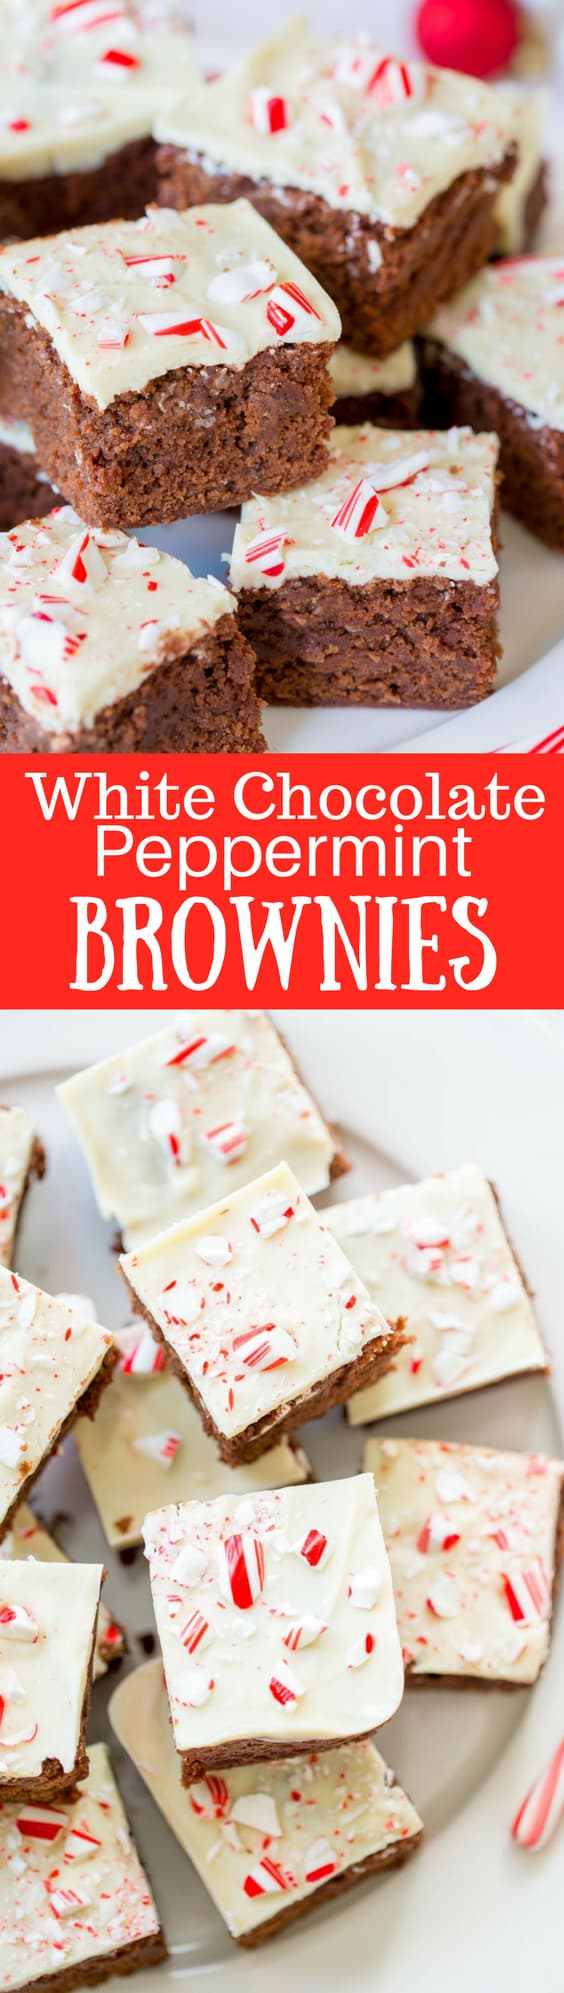 White Chocolate Peppermint Brownies - Lightly sweet, cakey chocolate brownies topped with melted white chocolate and crushed peppermints for a simple, easy and tasty dessert to help celebrate the season. www.savingdessert.com